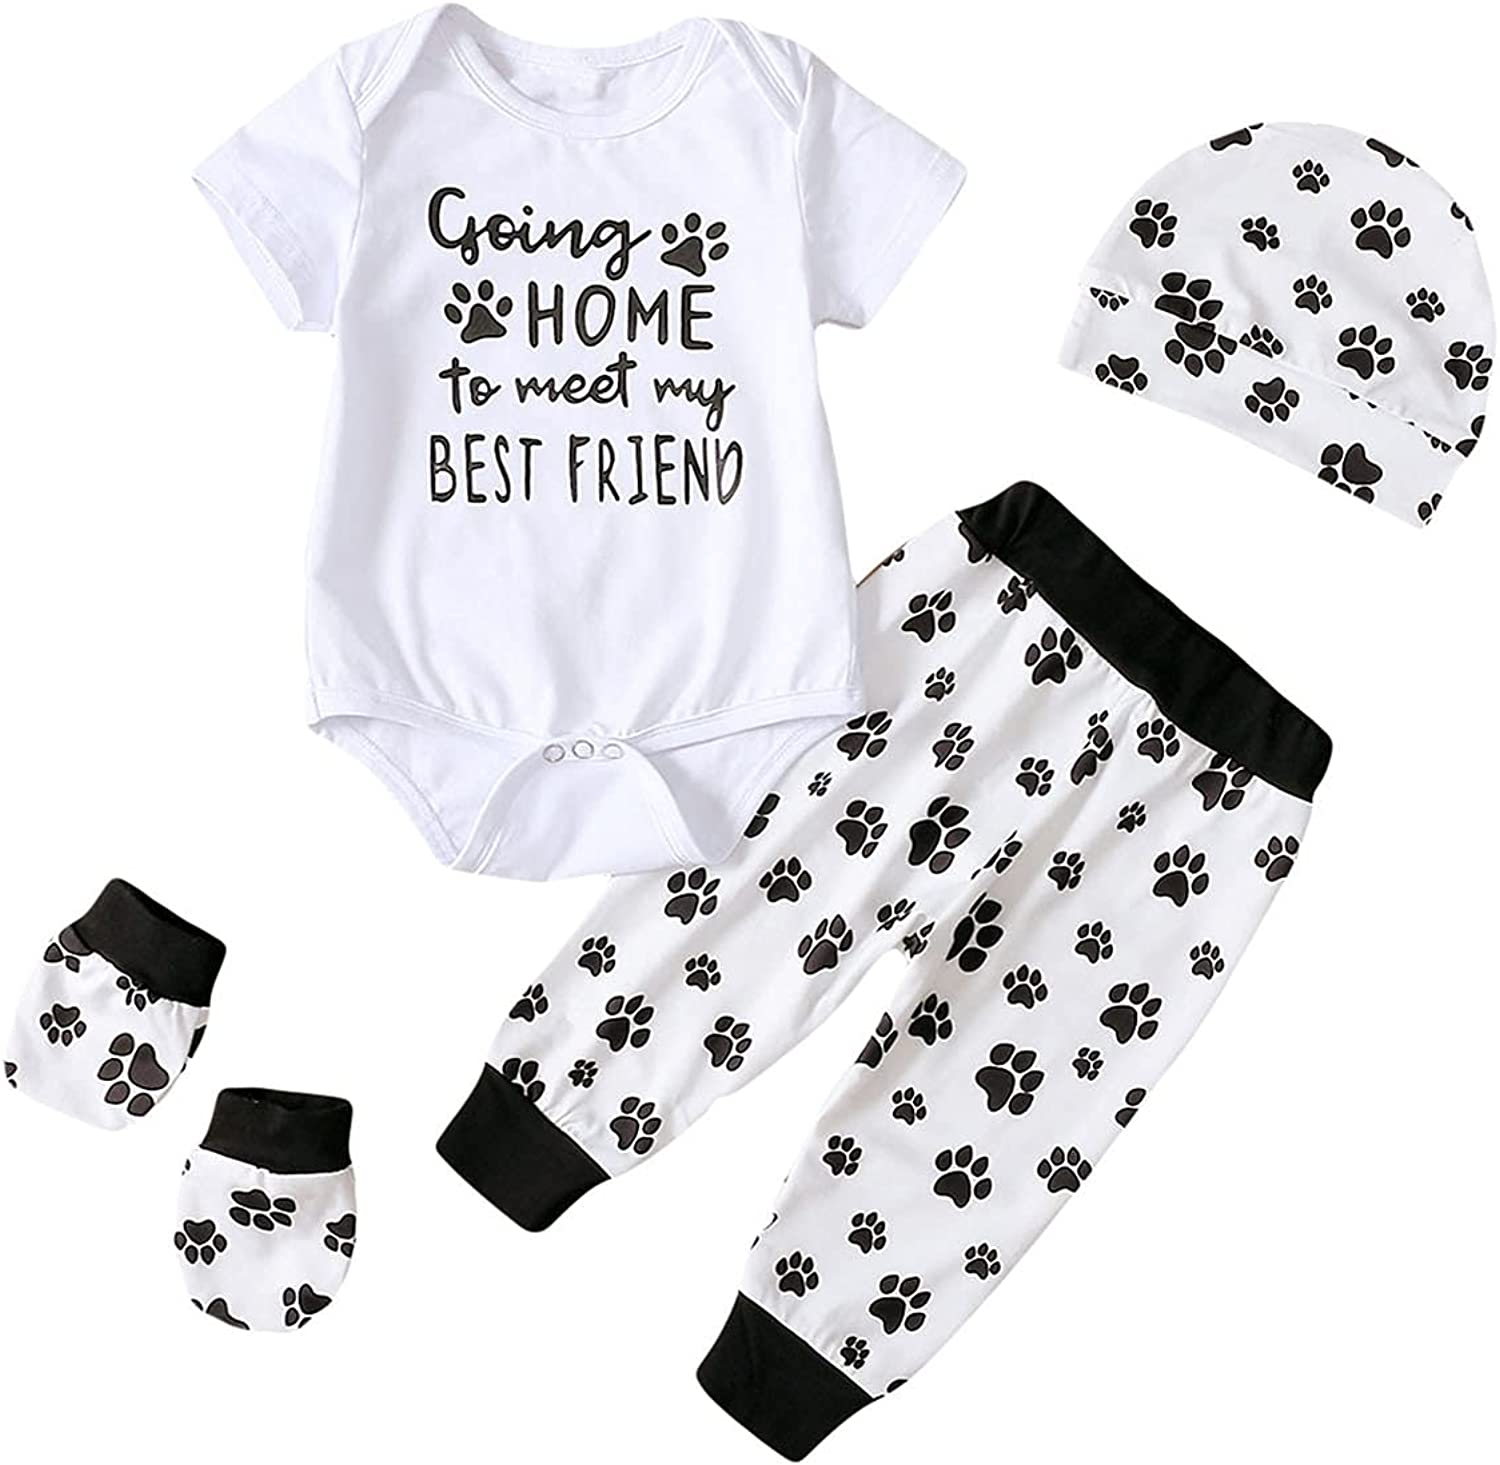 Top 10 Bring Home Baby Outfit